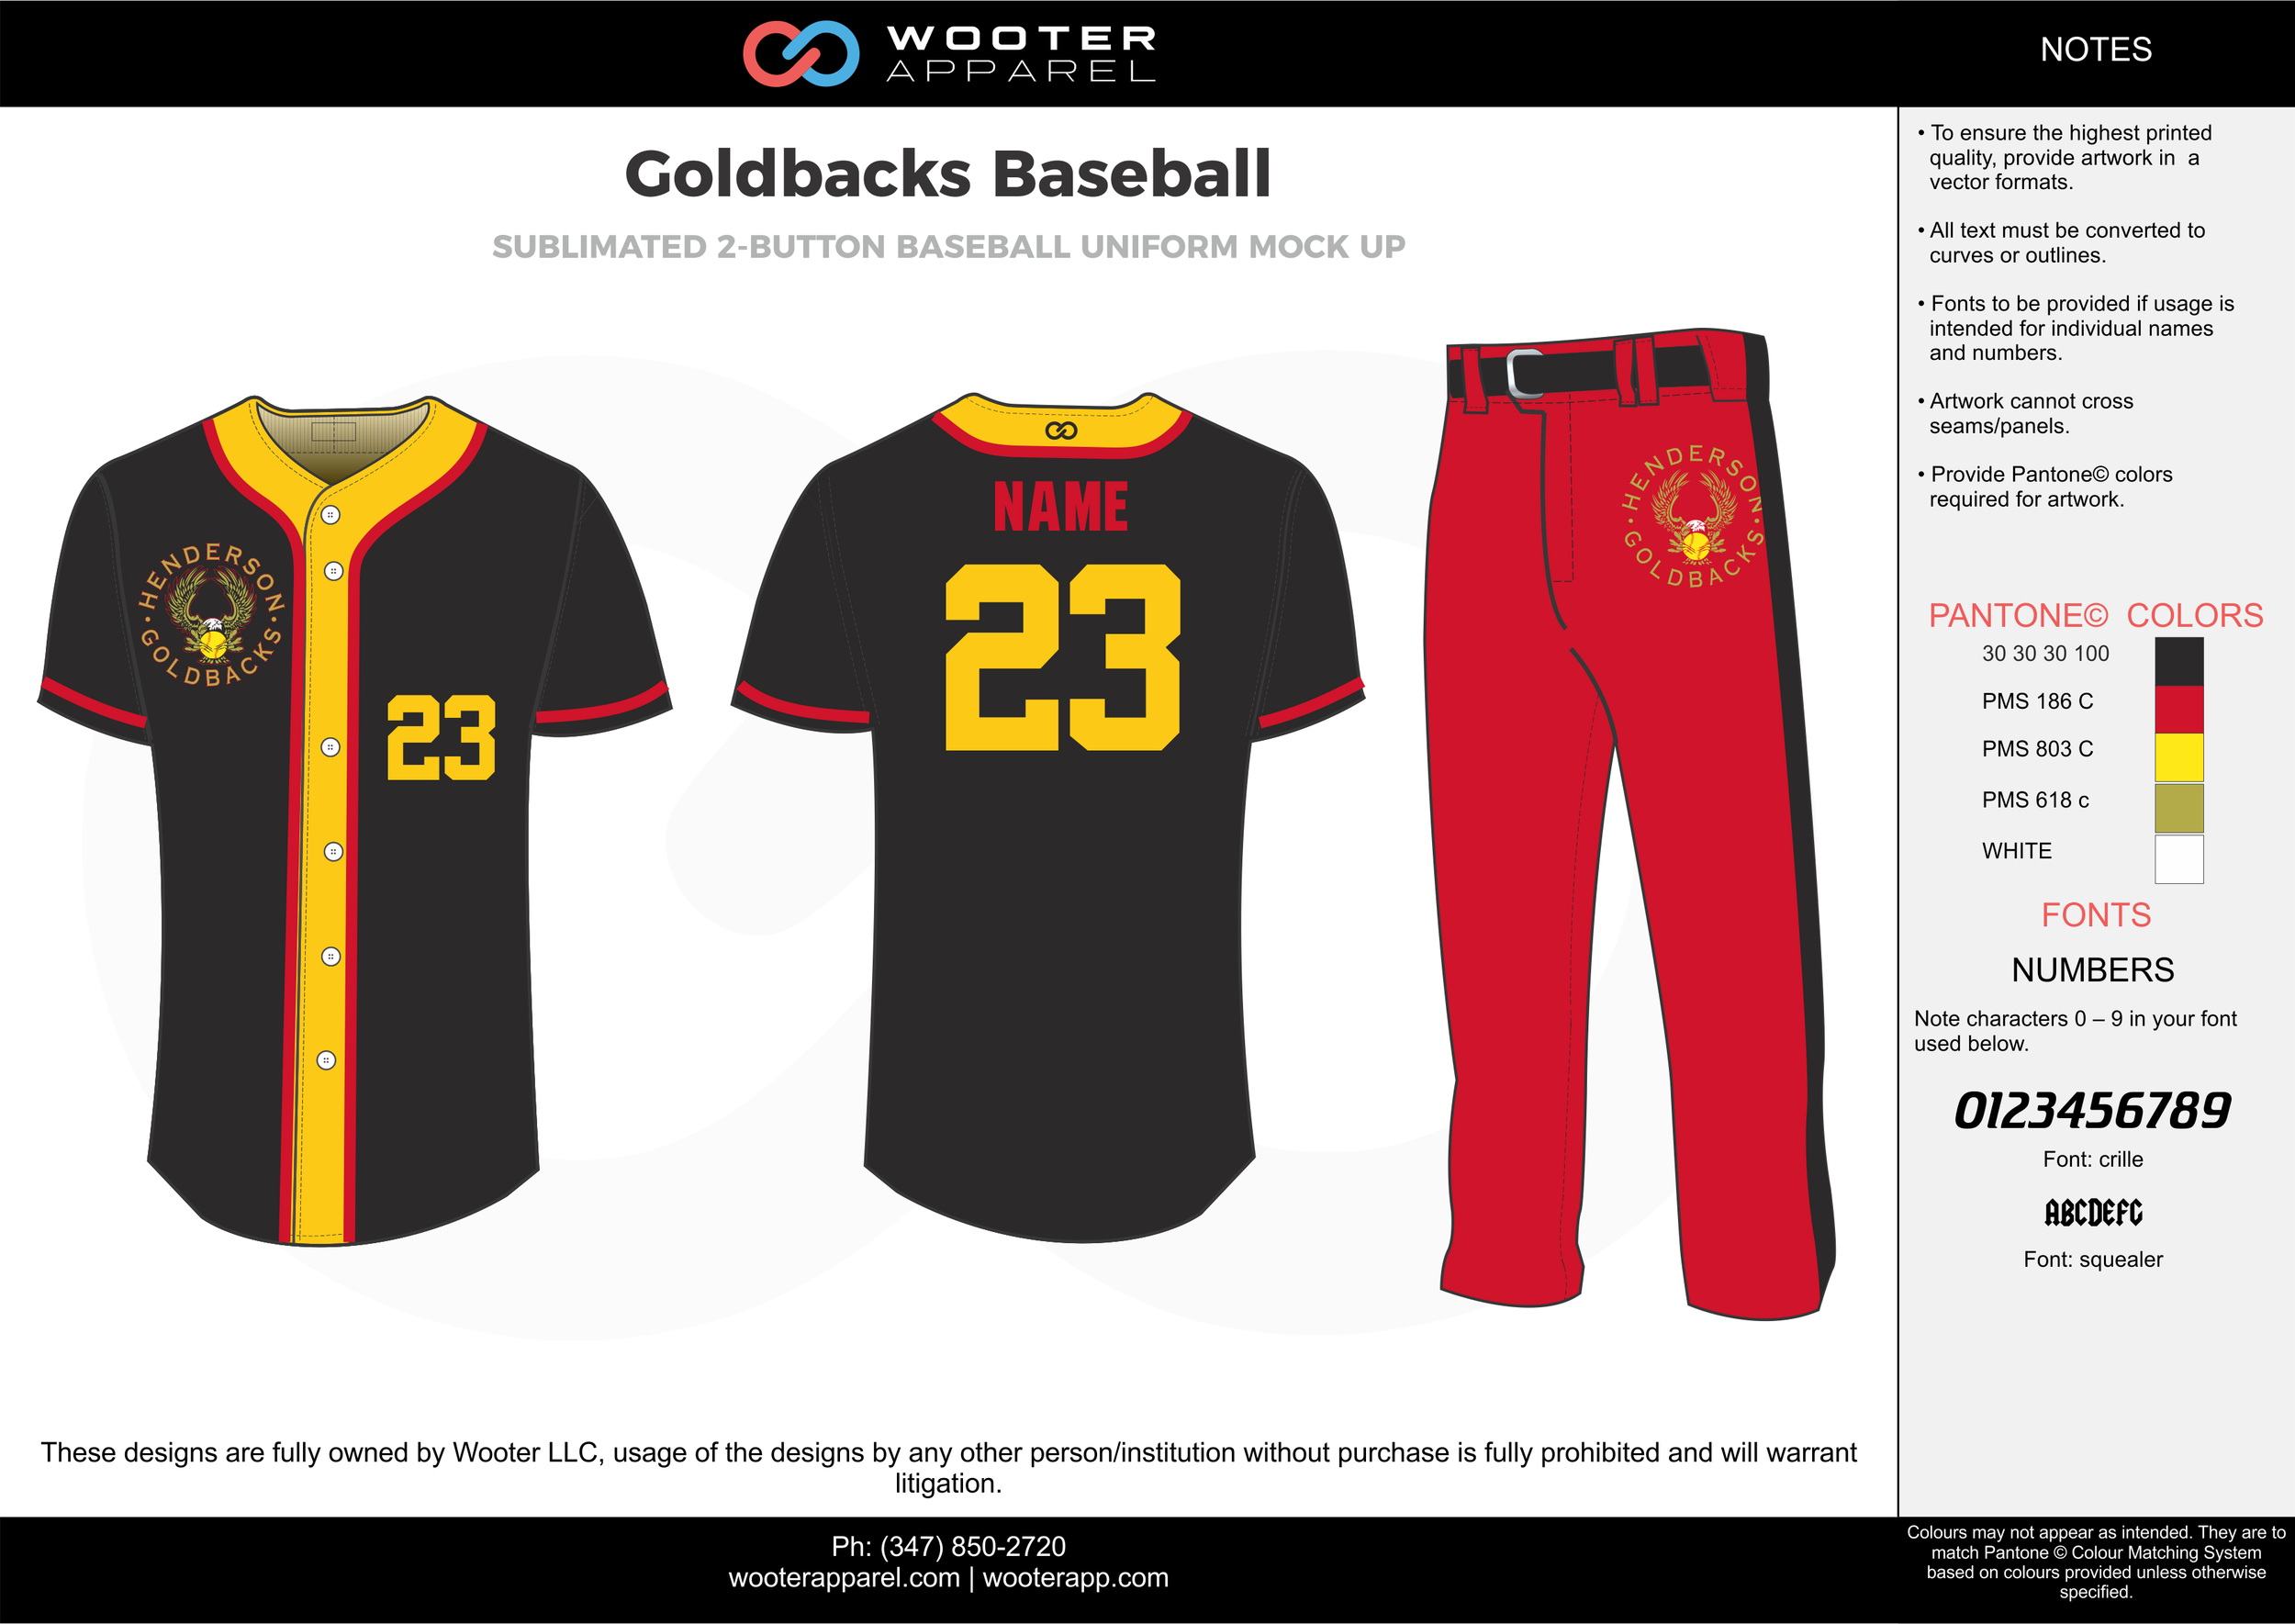 GOLDBACKS BASEBALL black red yellow white baseball uniforms jerseys pants